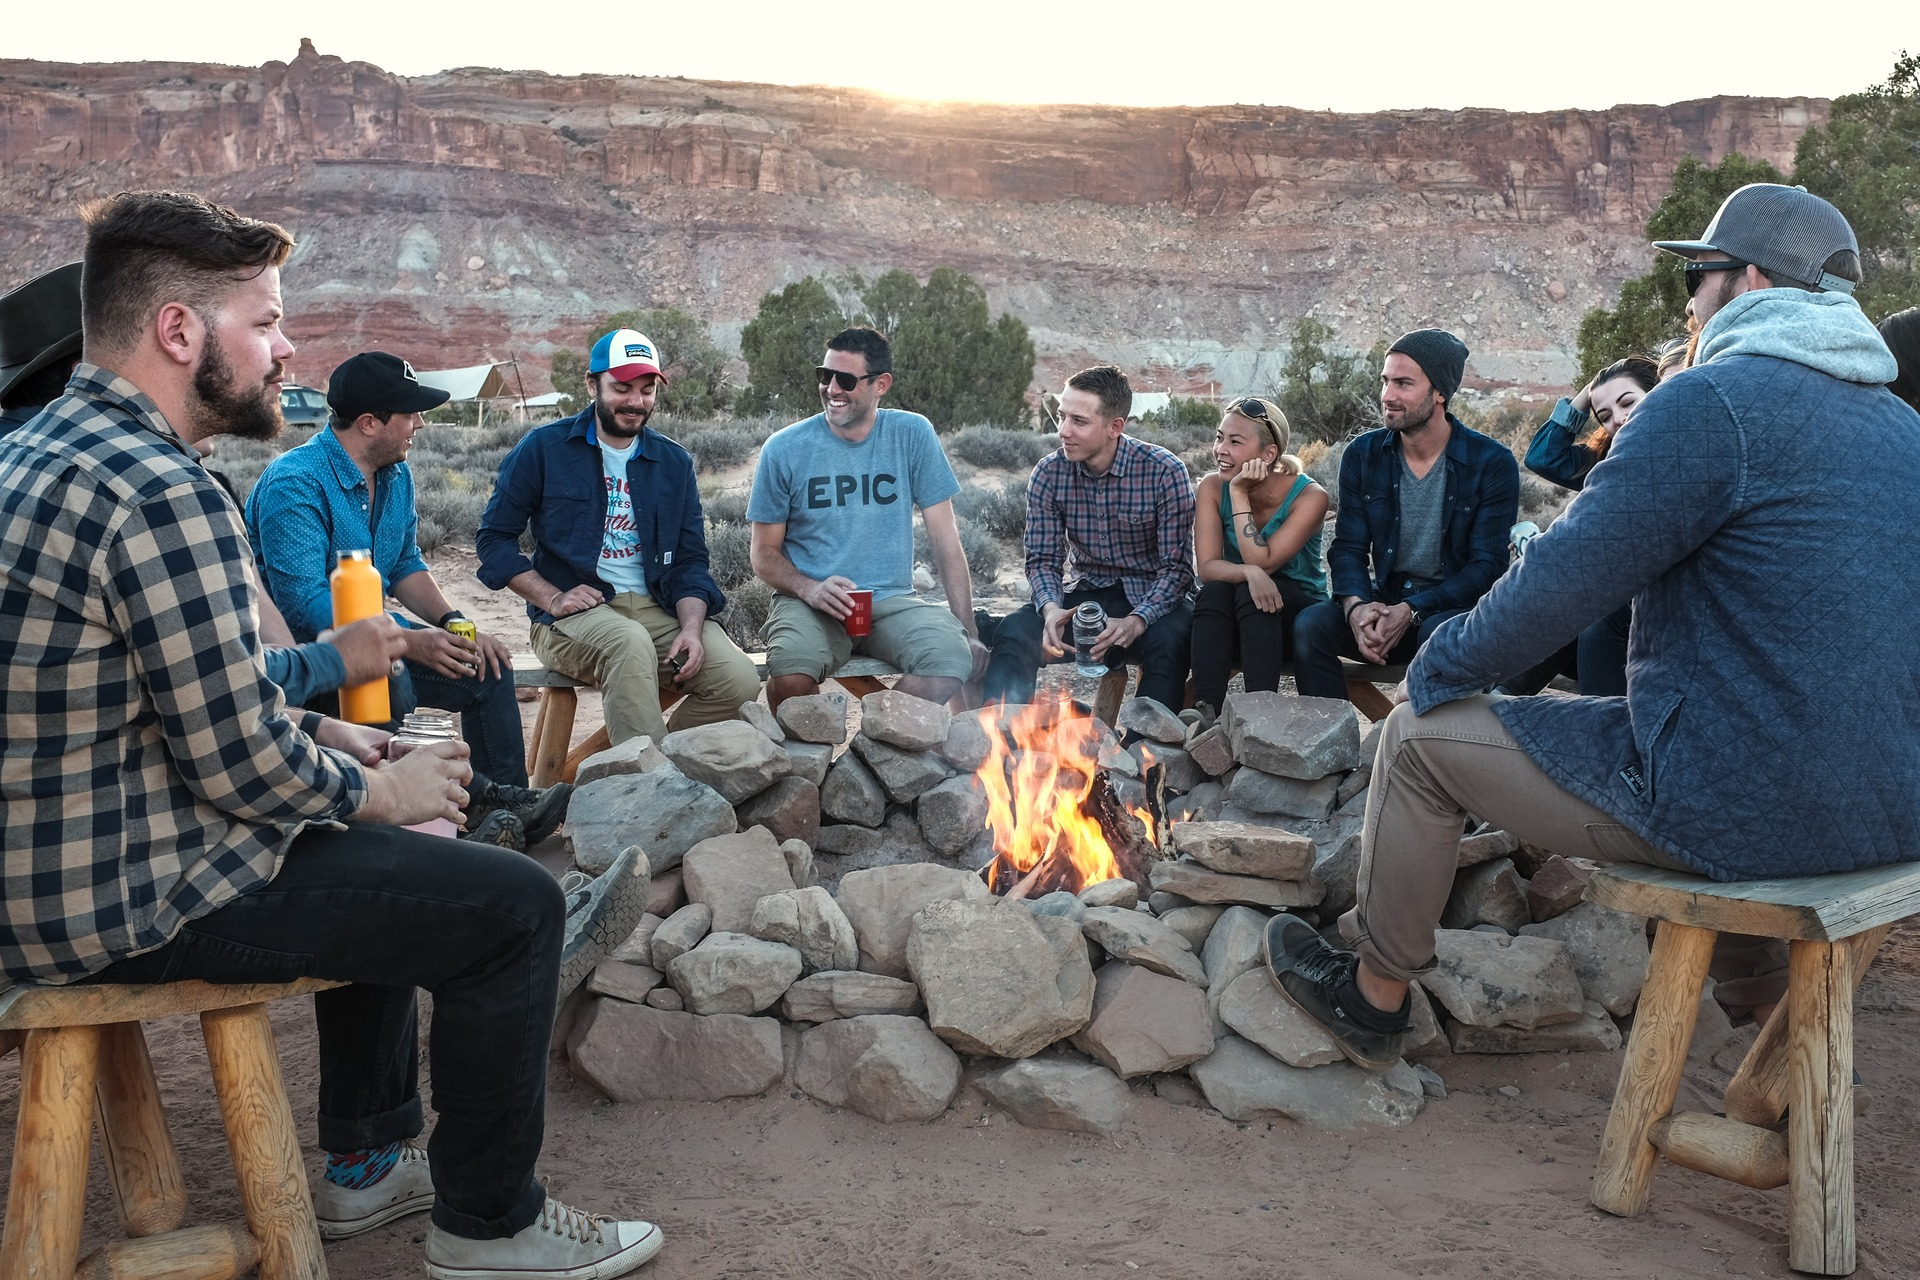 Group of people sitting around a campfire listening to one person talk